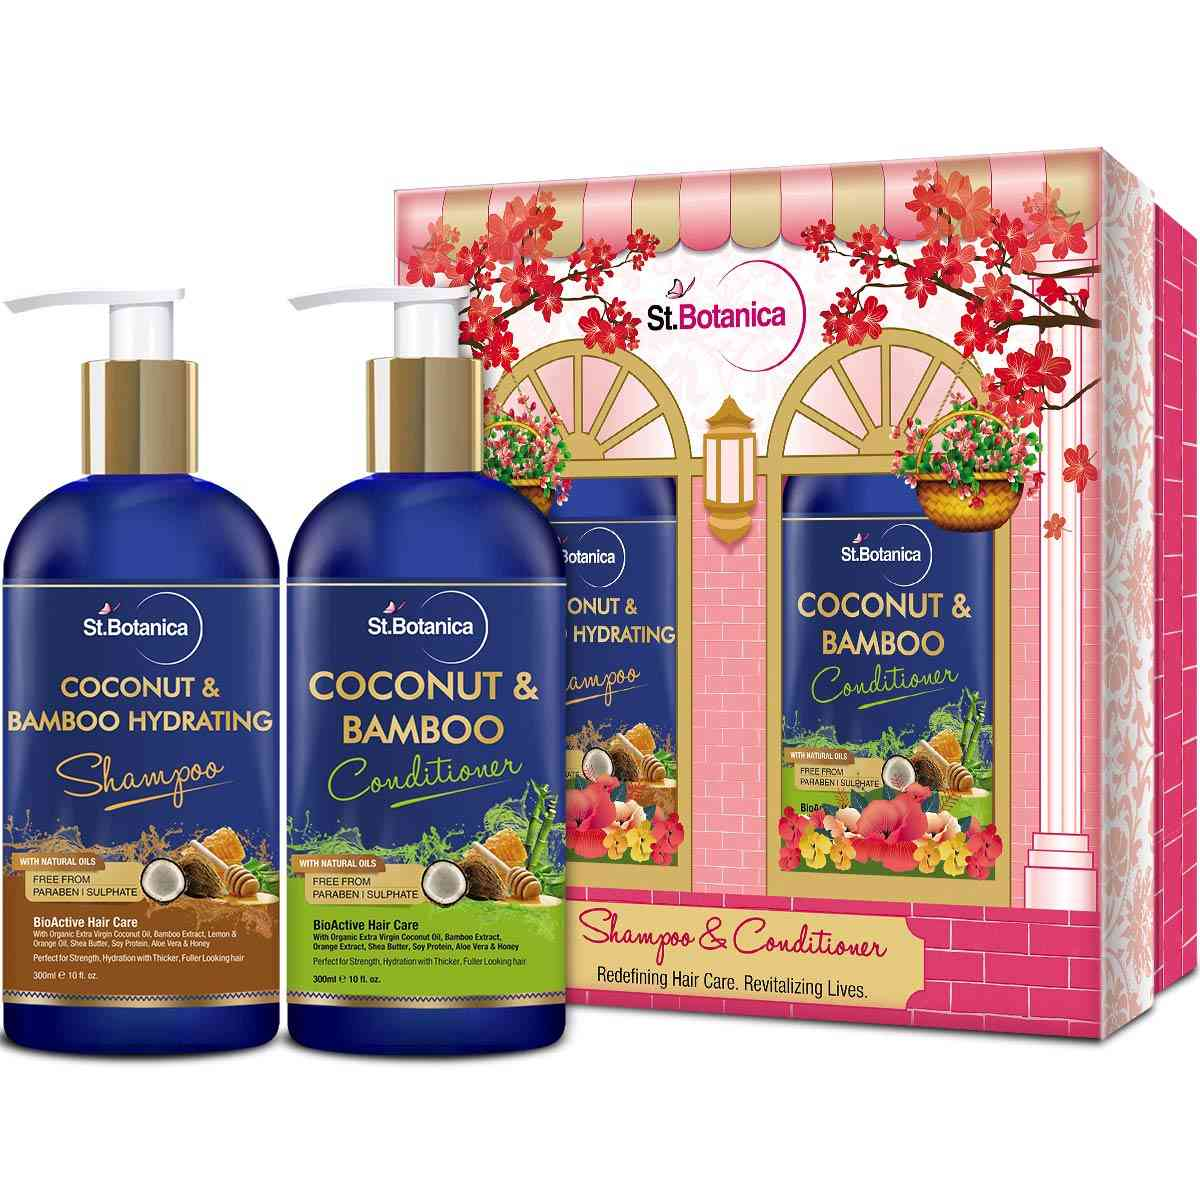 StBotanica-Coconut-Oil-Bamboo-Hair-Strengthening-Shampoo-Conditioner-300ml1